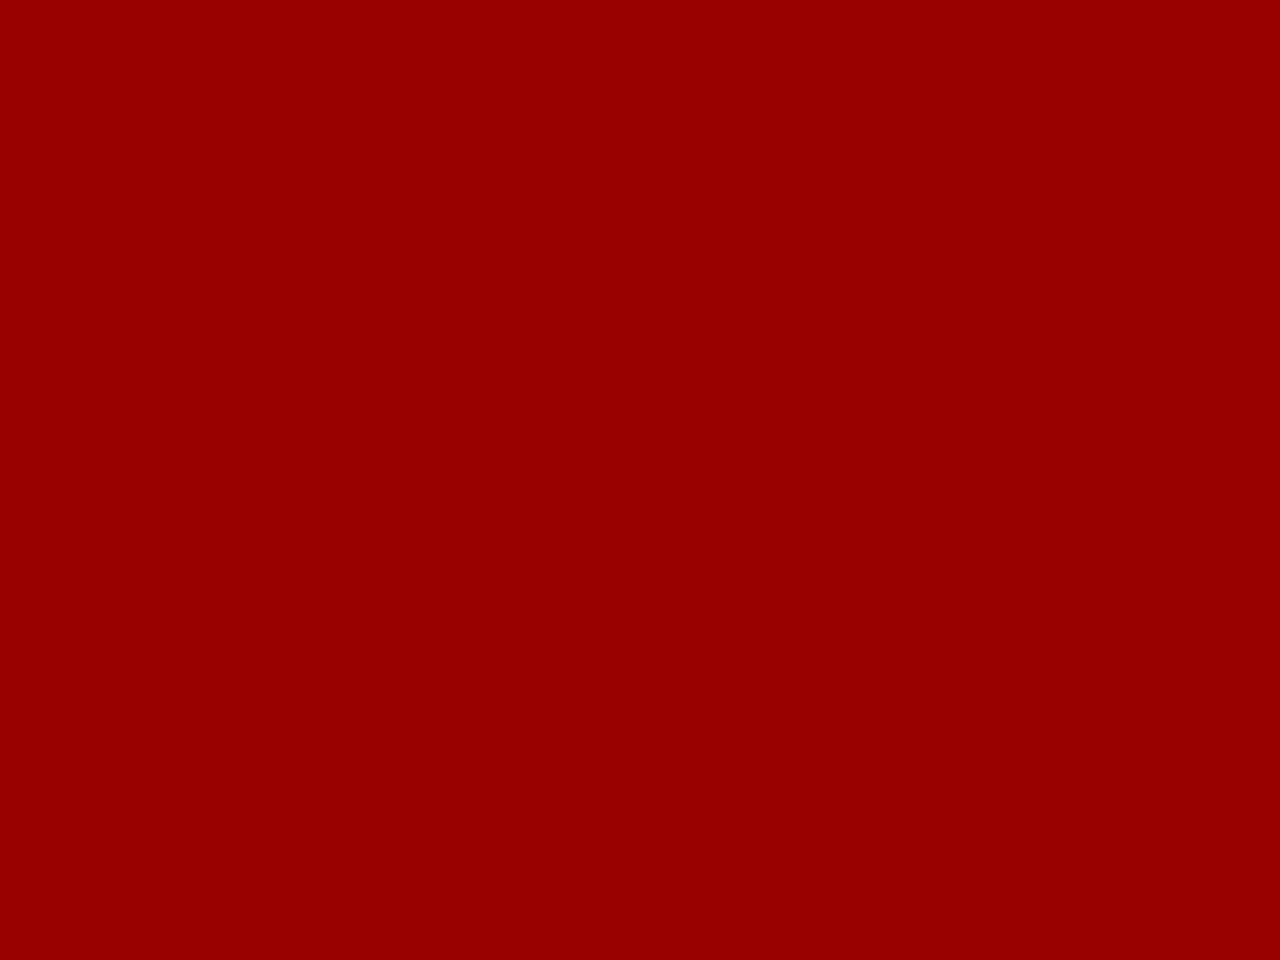 1280x960 USC Cardinal Solid Color Background